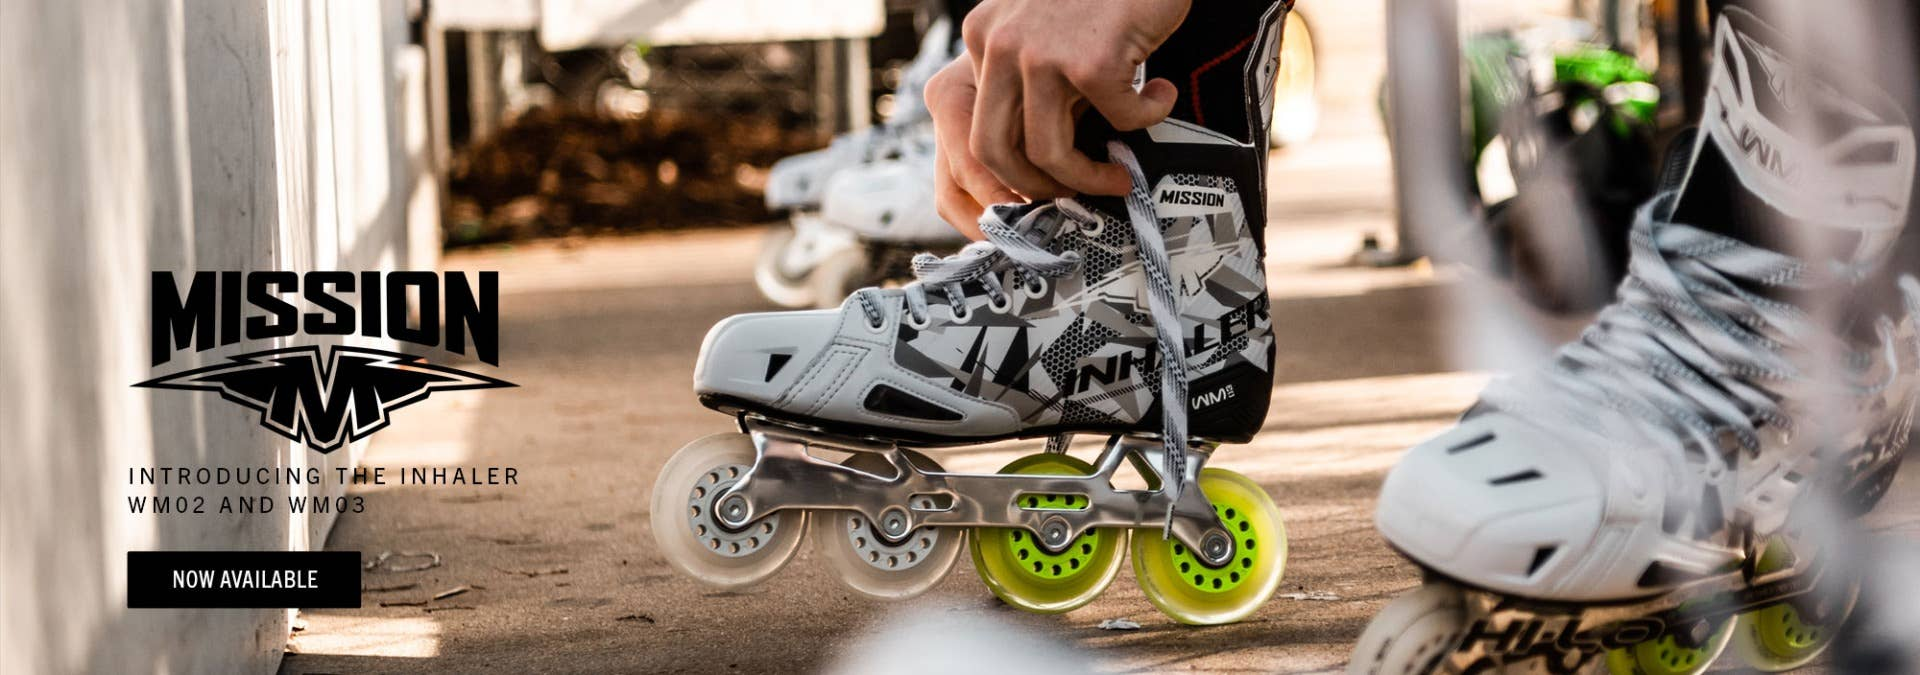 Mission Inhaler Roller Hockey Skates